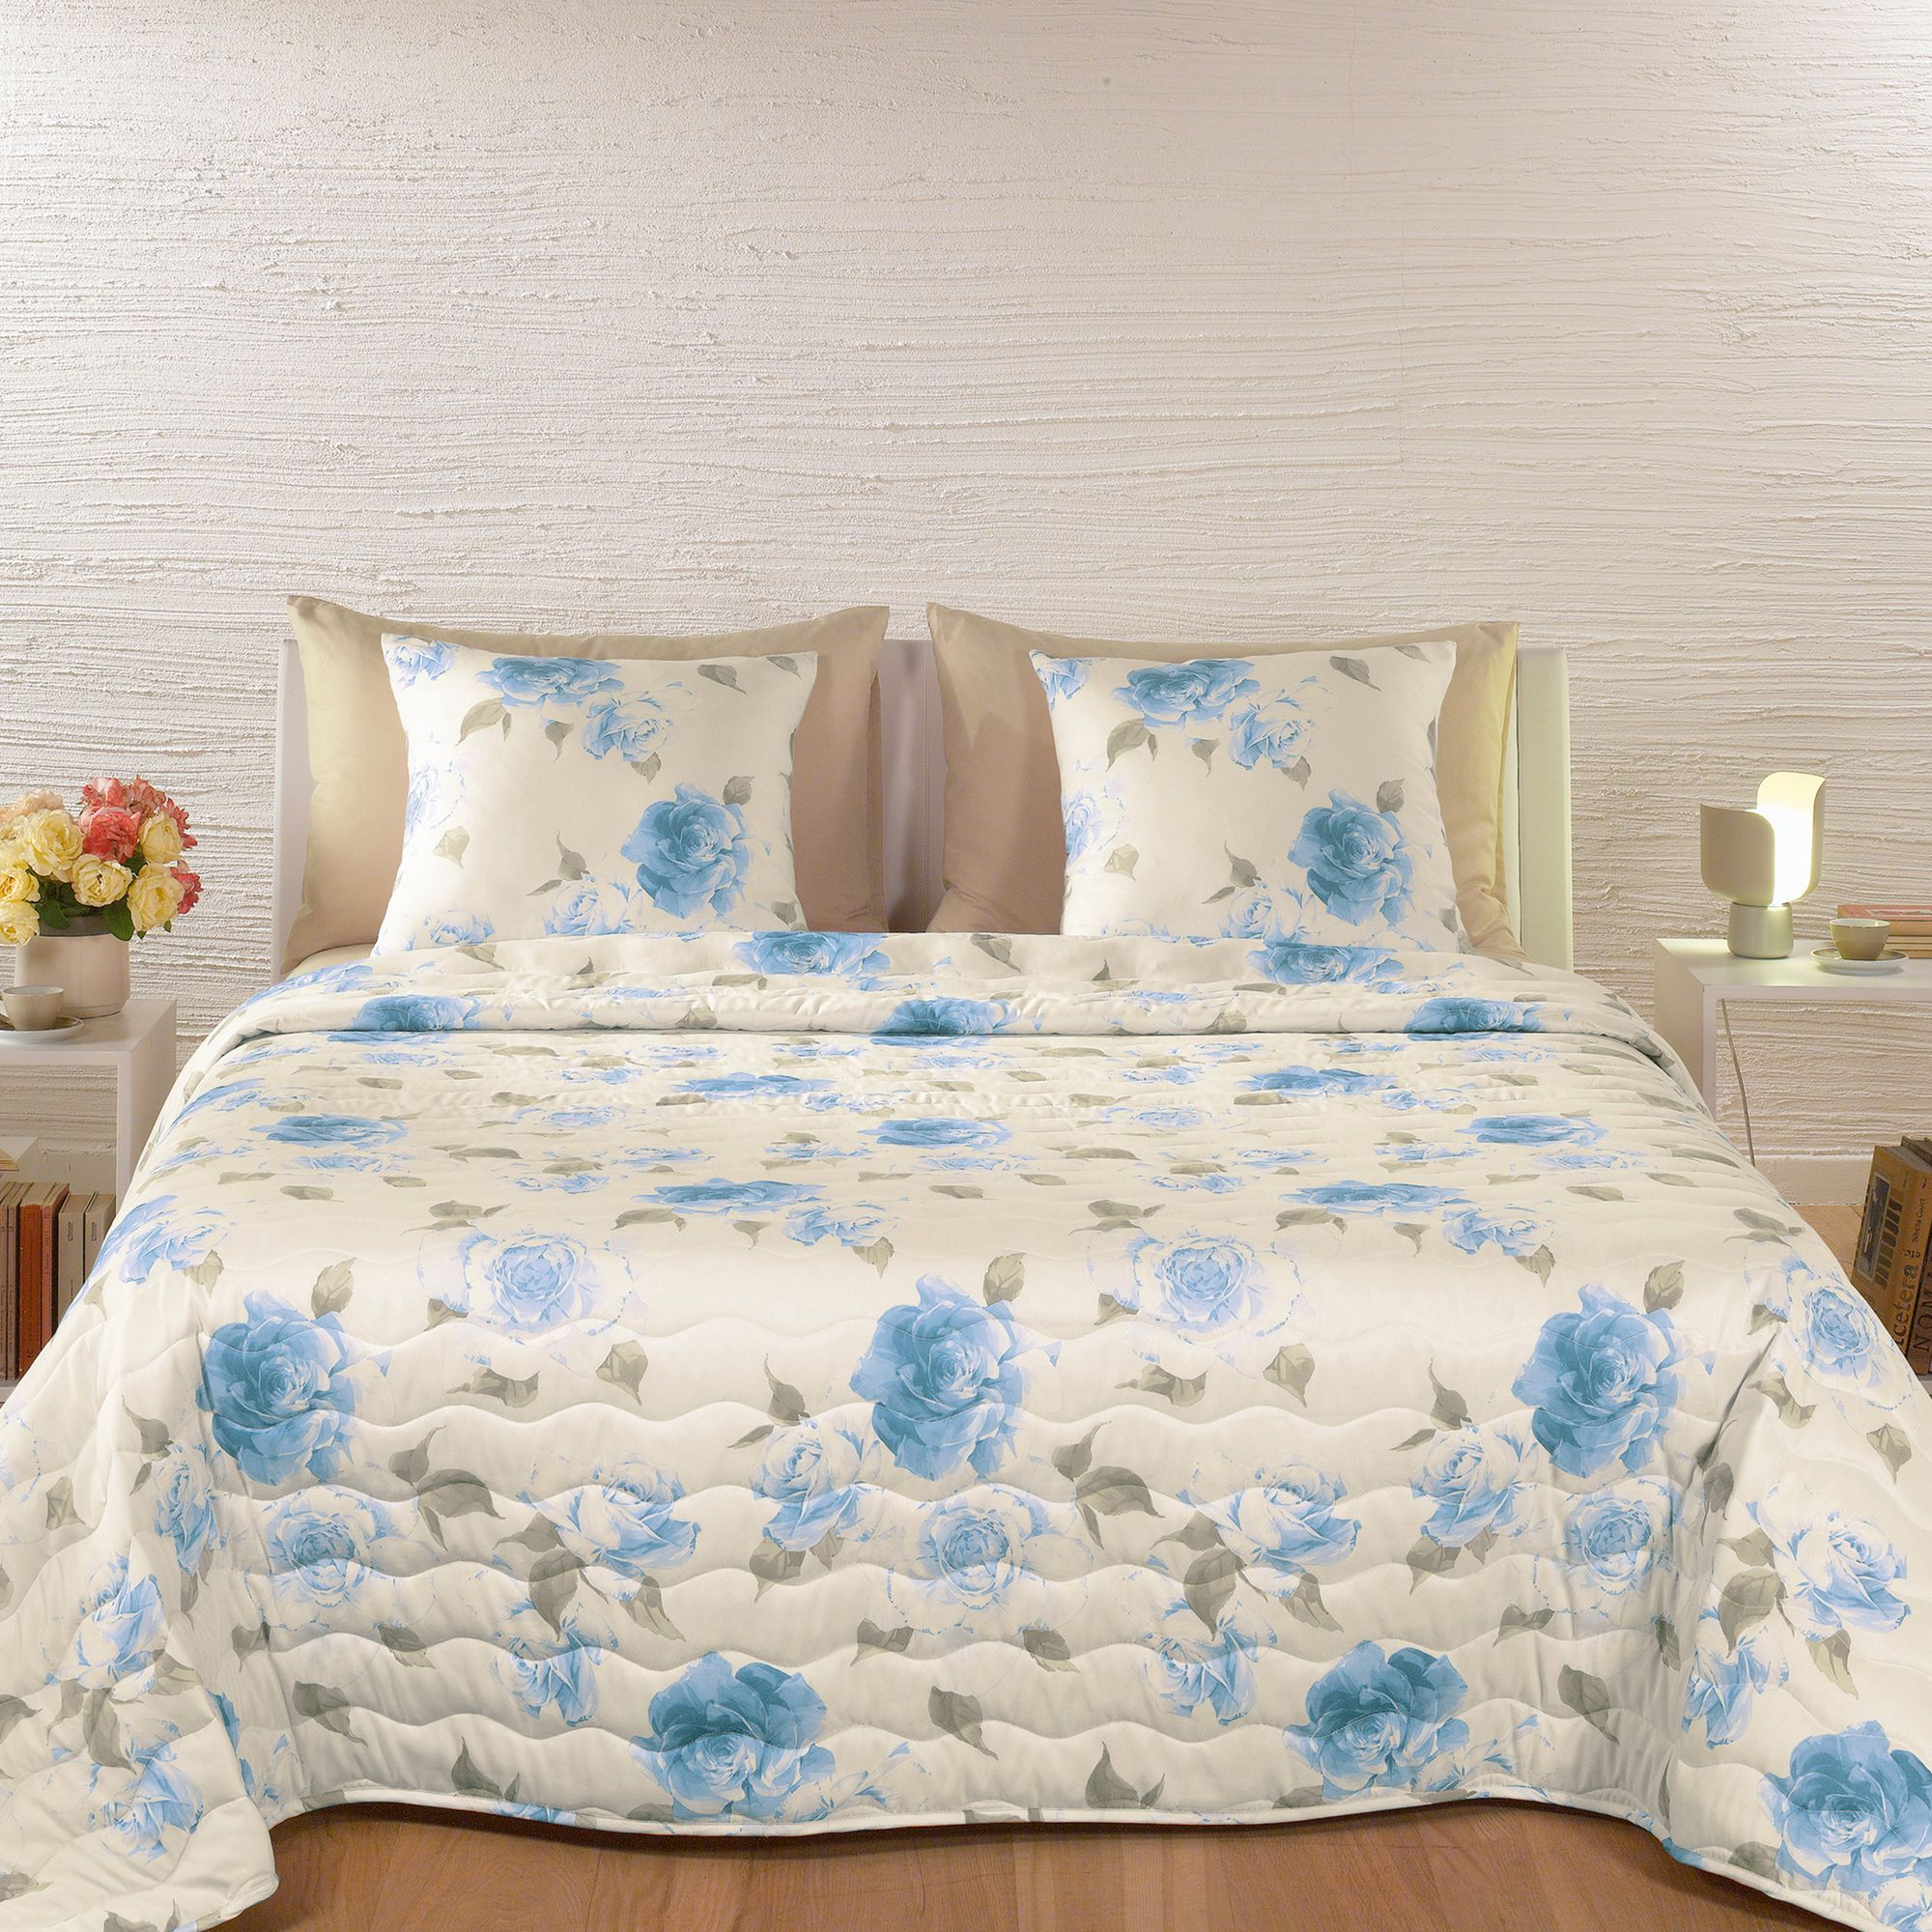 bedding king duvet idearama aidith cover bed co super covers blue marimekko brown amazon setking size vera sham